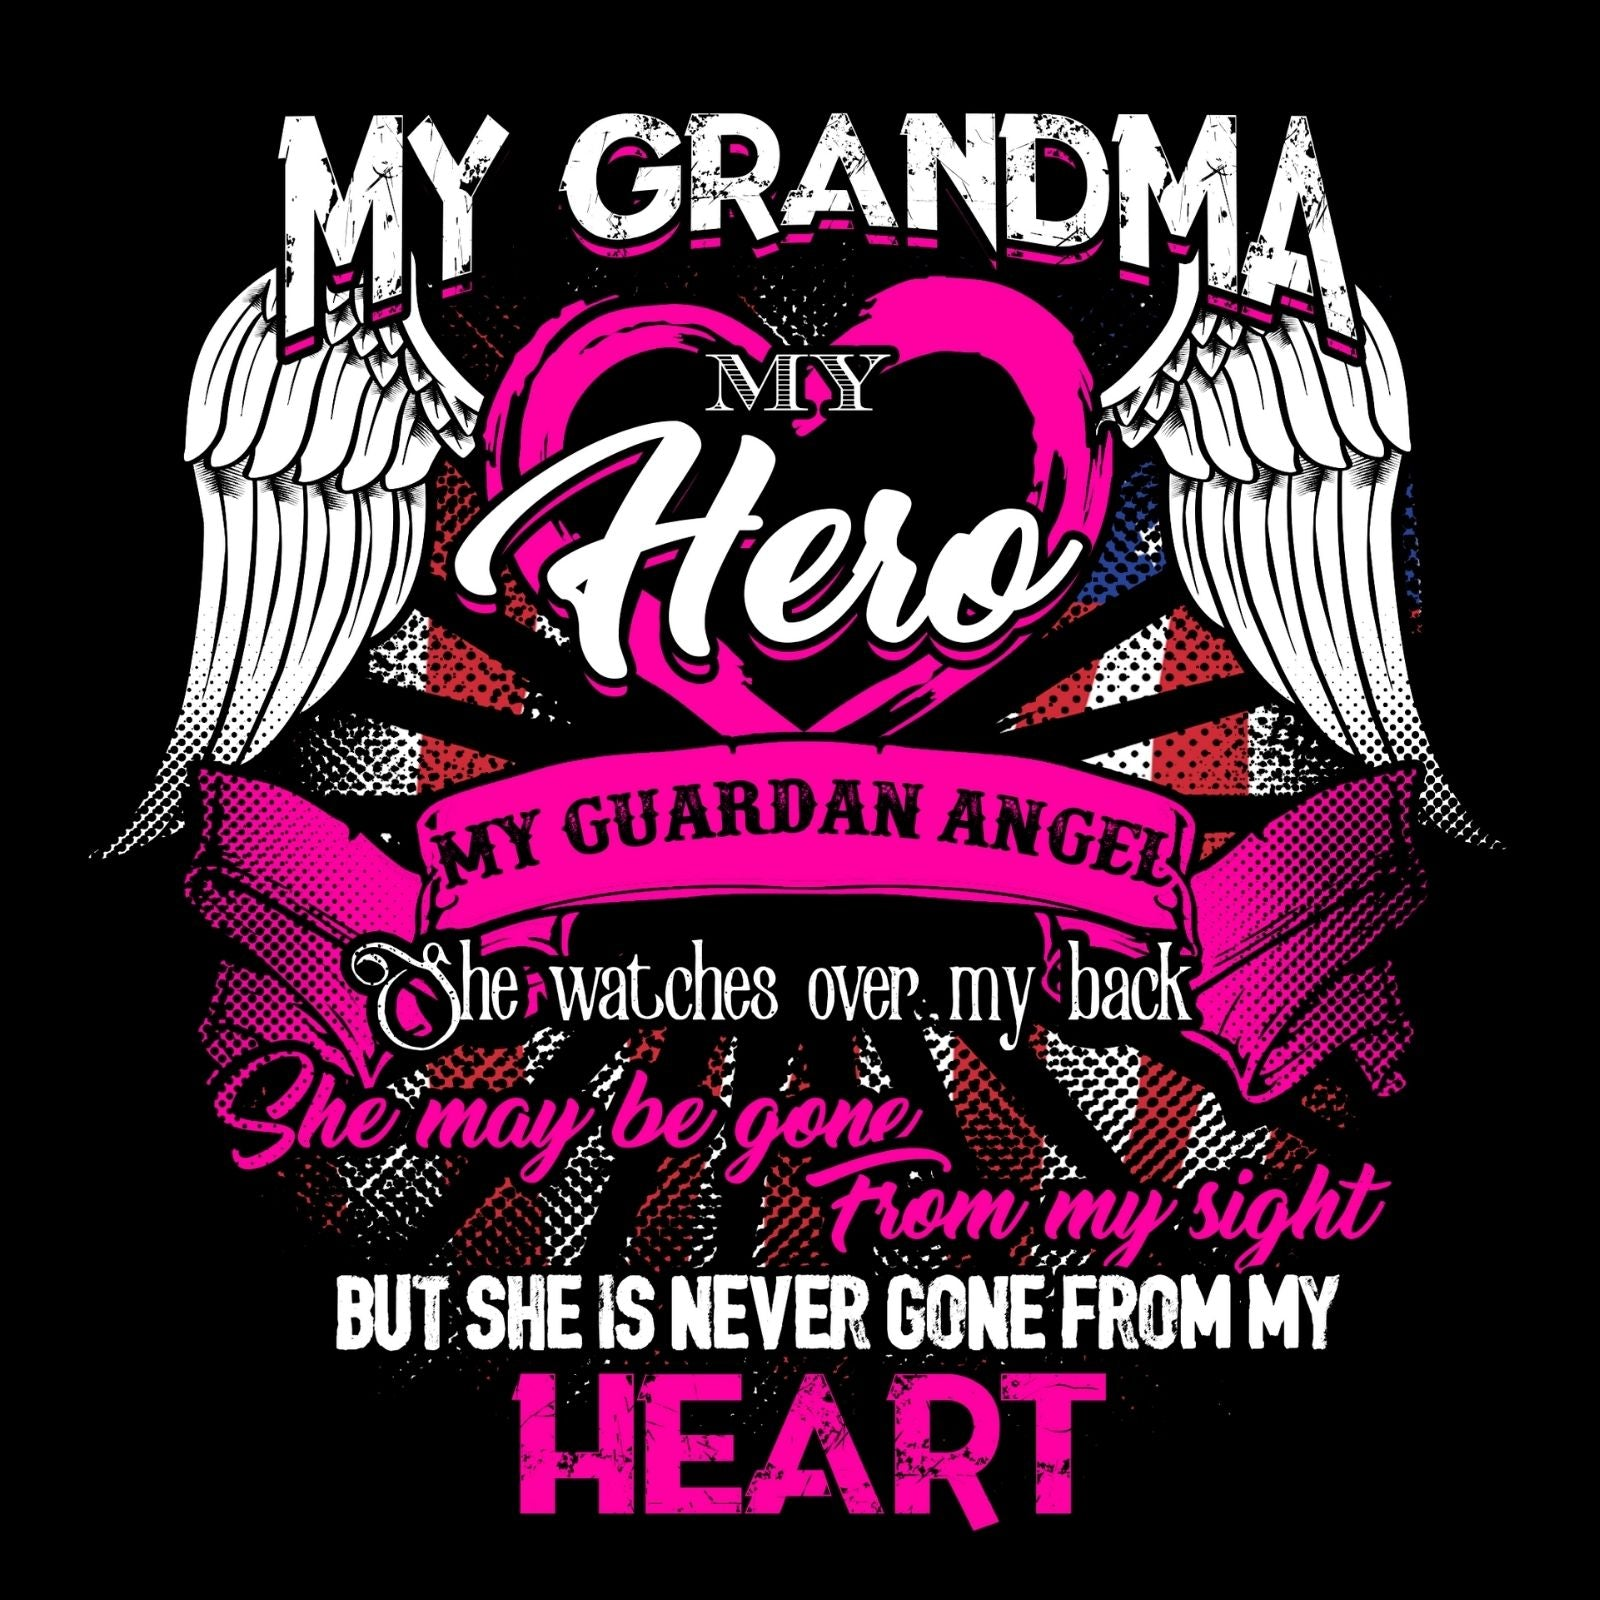 My Grandma My Hero My Guardian Angel She Watches Over My Back She Maybe Gone From My Sight But She Is Never Gone From My Heart - Bastard Graphics